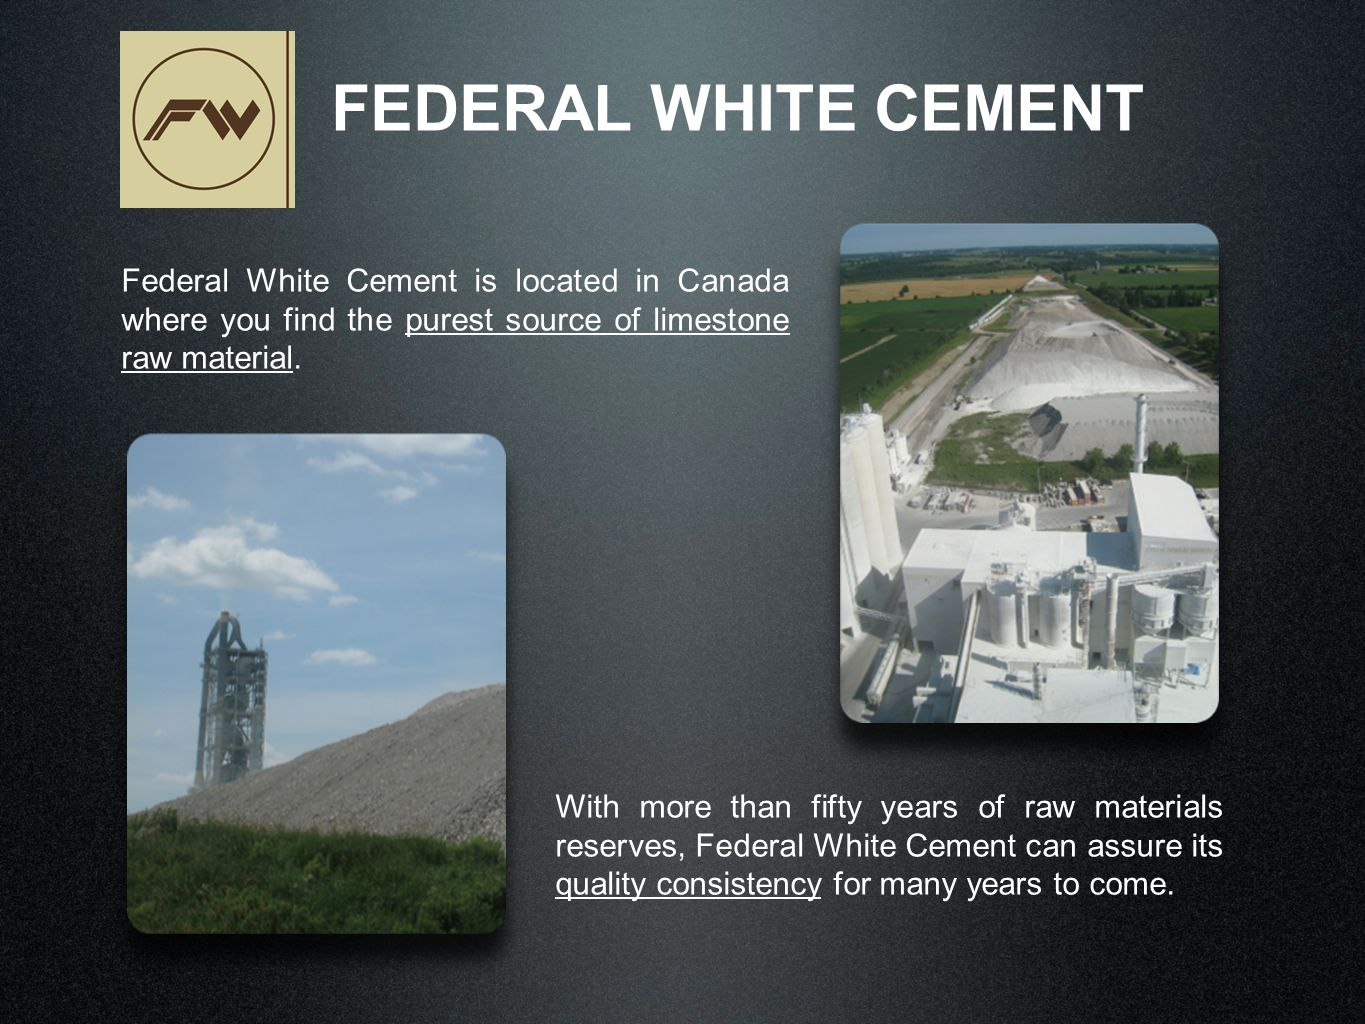 Federal White Cement is located in Canada where you find the purest source of limestone raw material. FEDERAL WHITE CEMENT With more than fifty years